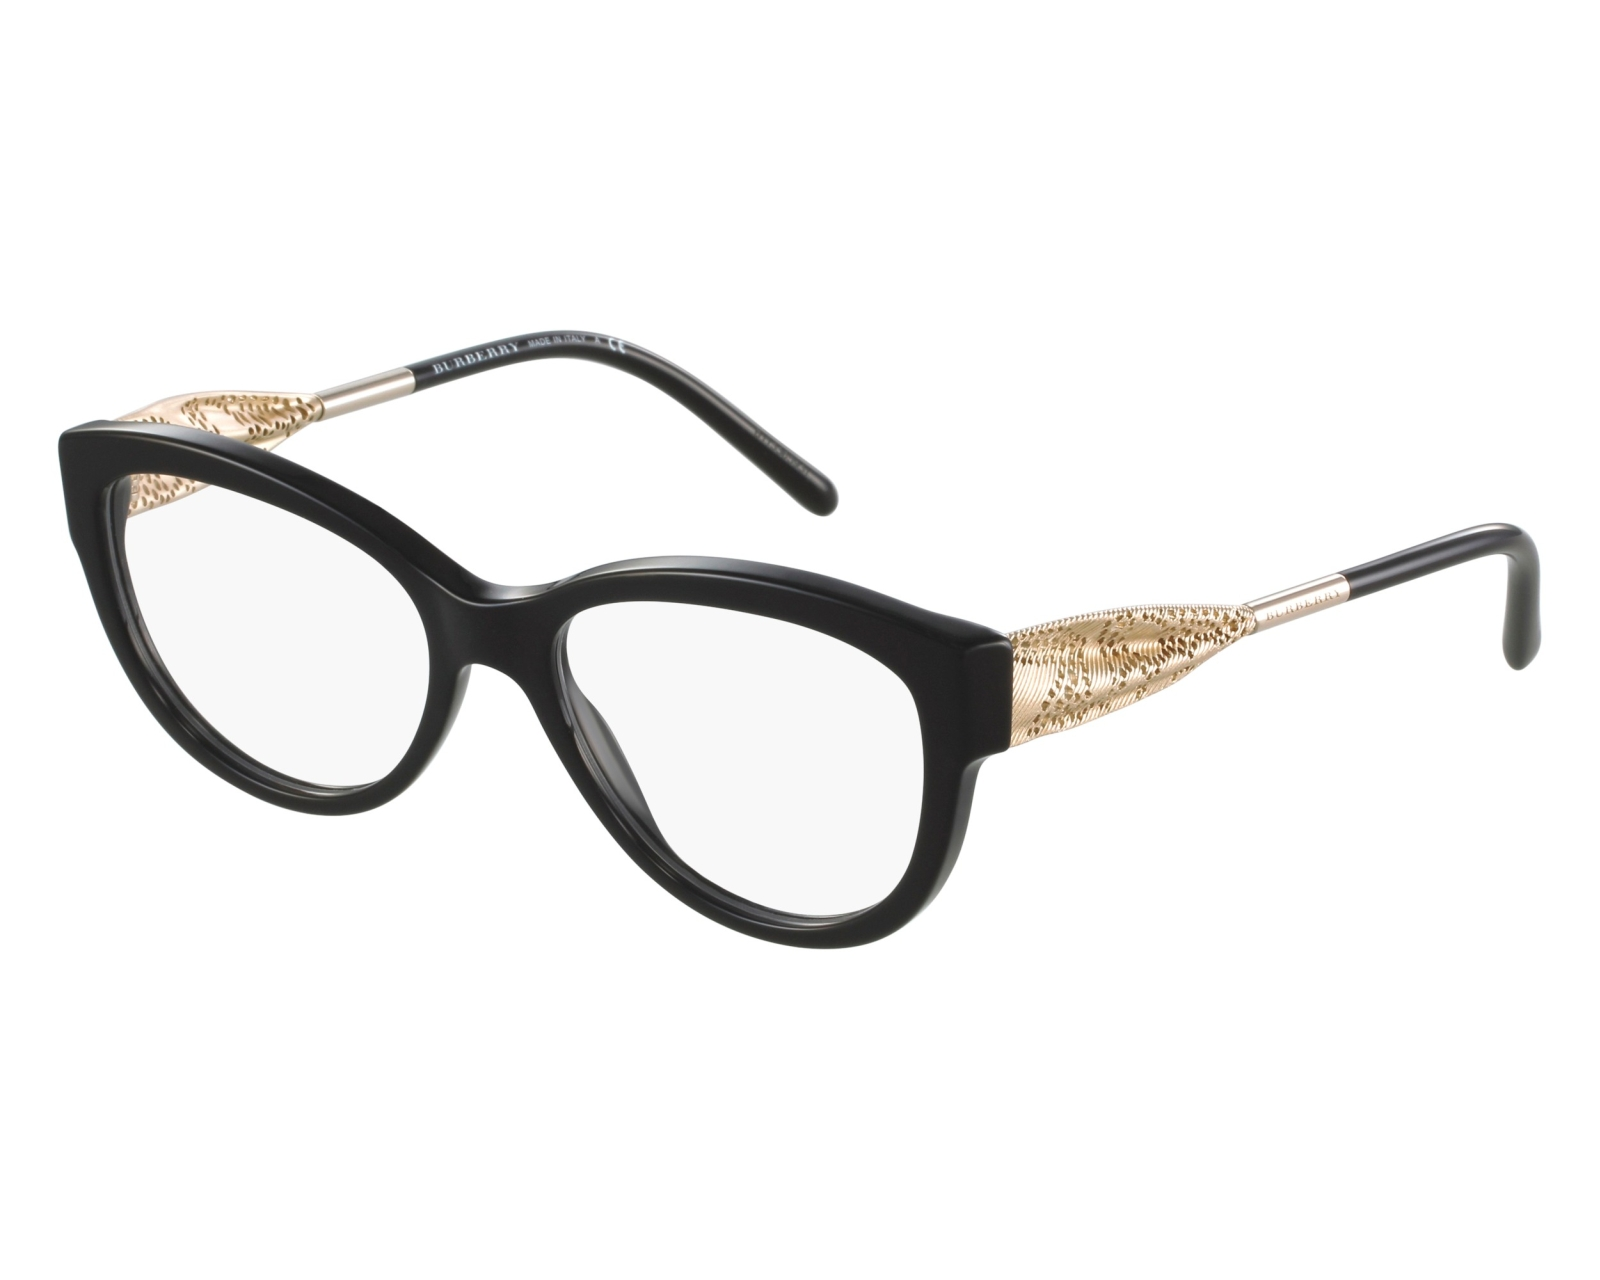 55f6454b1887 Buy Burberry Eyeglasses BE-2210 3001 Online - Visionet